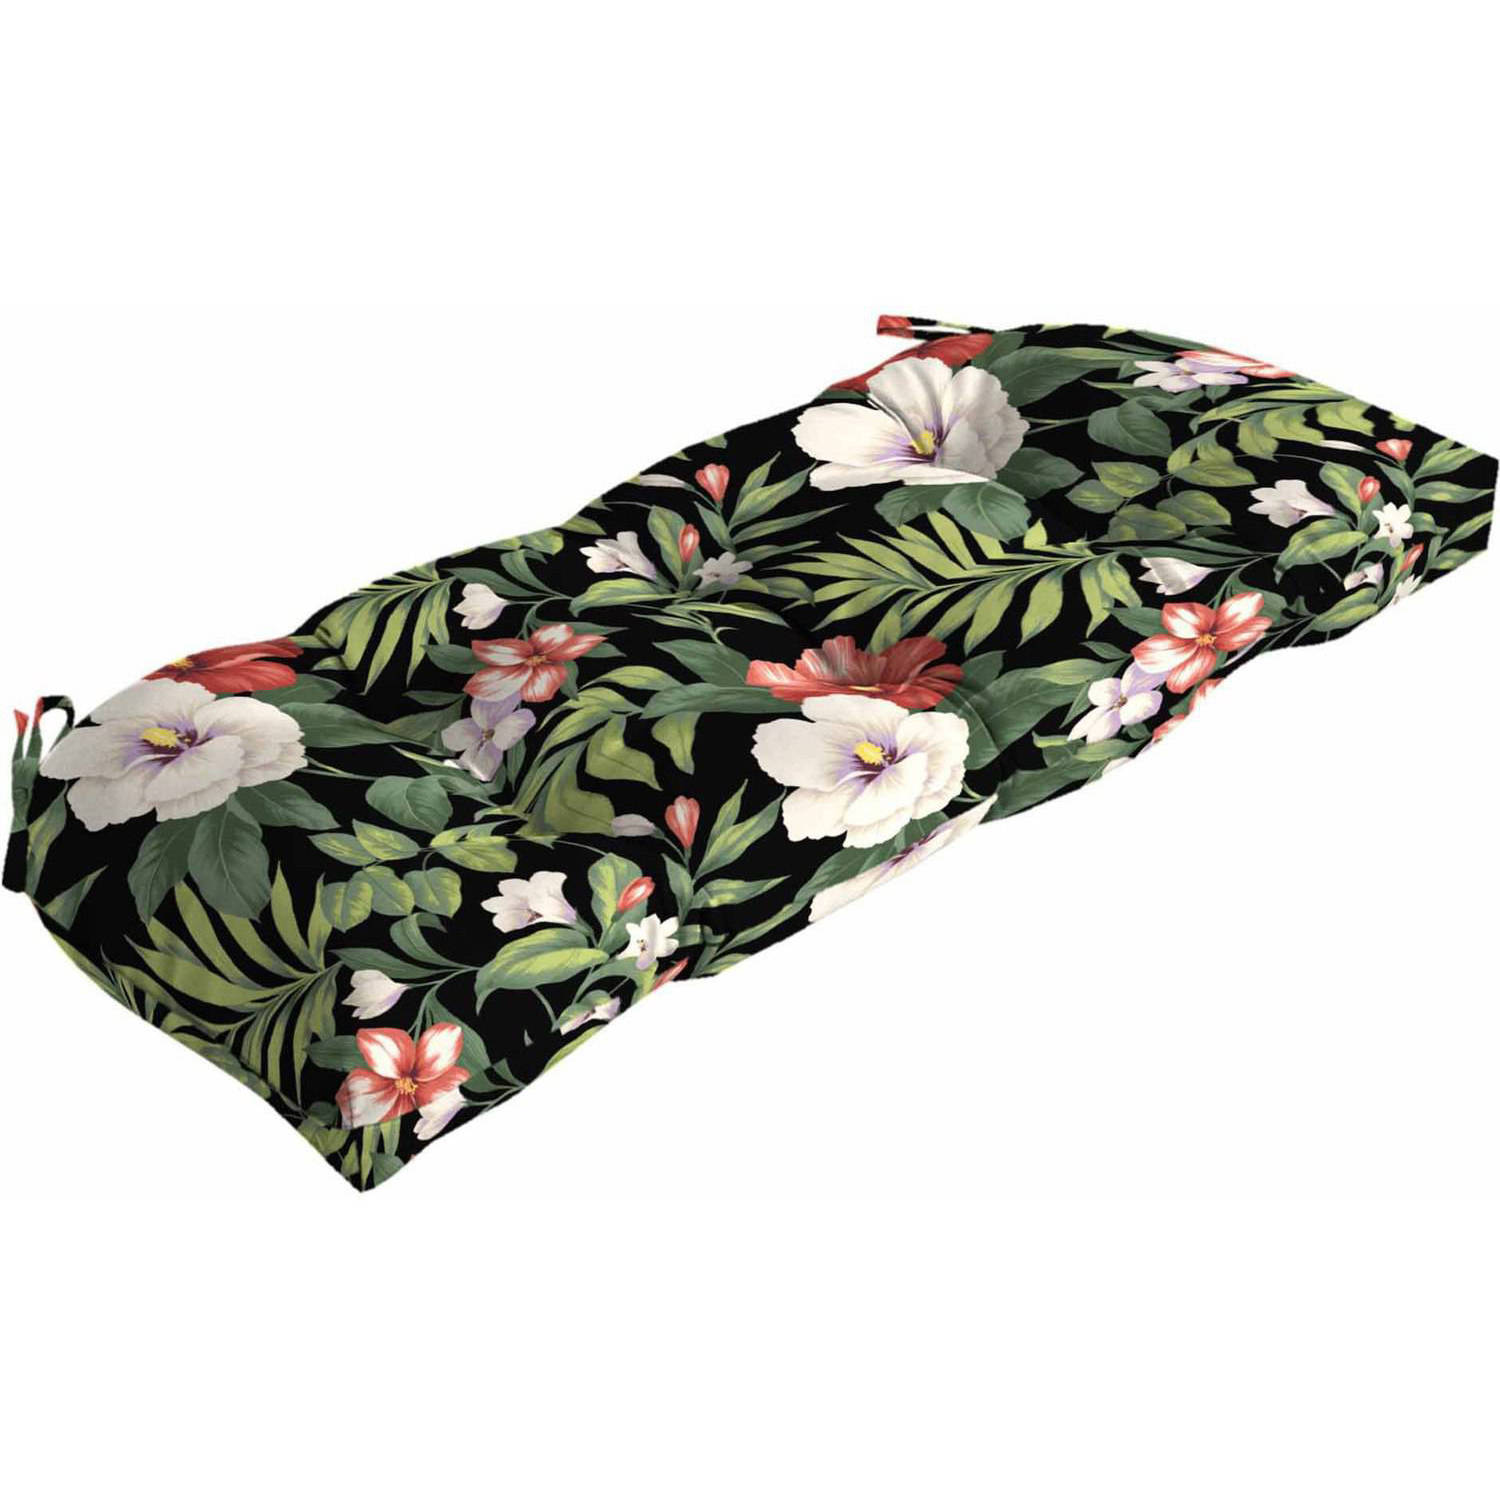 "Better Homes & Gardens Black Ground Tropical 41.5""W x 18""D Outdoor Patio Wicker Settee Cushion"